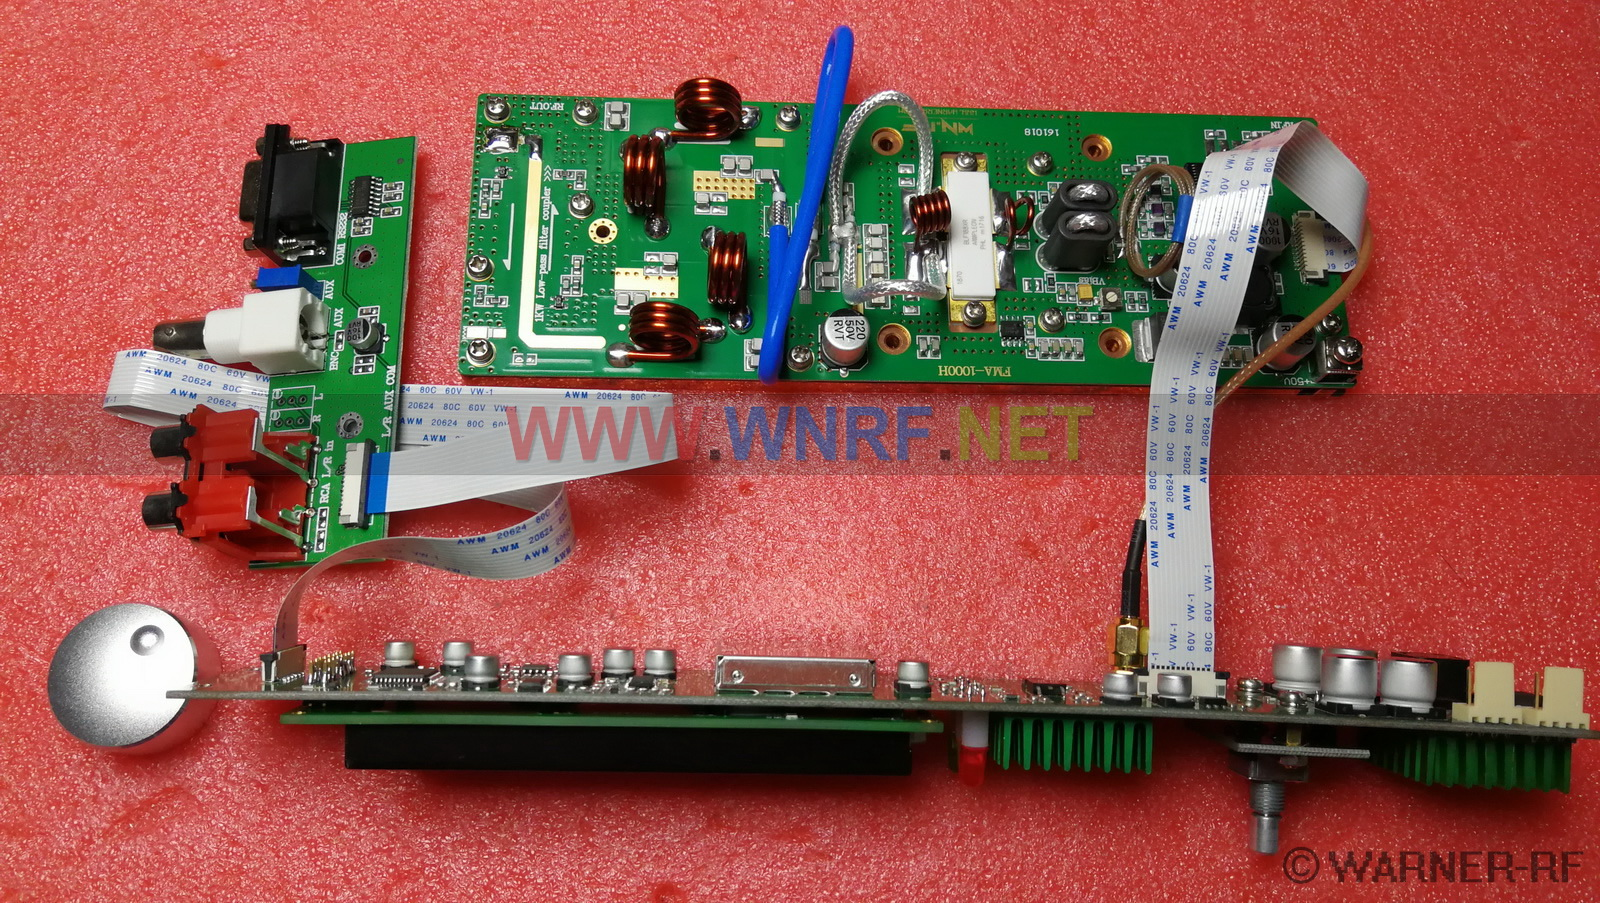 [FMA-1000H] 1000W FM stereo broadcast transmitter PCB KITS - Click Image to Close